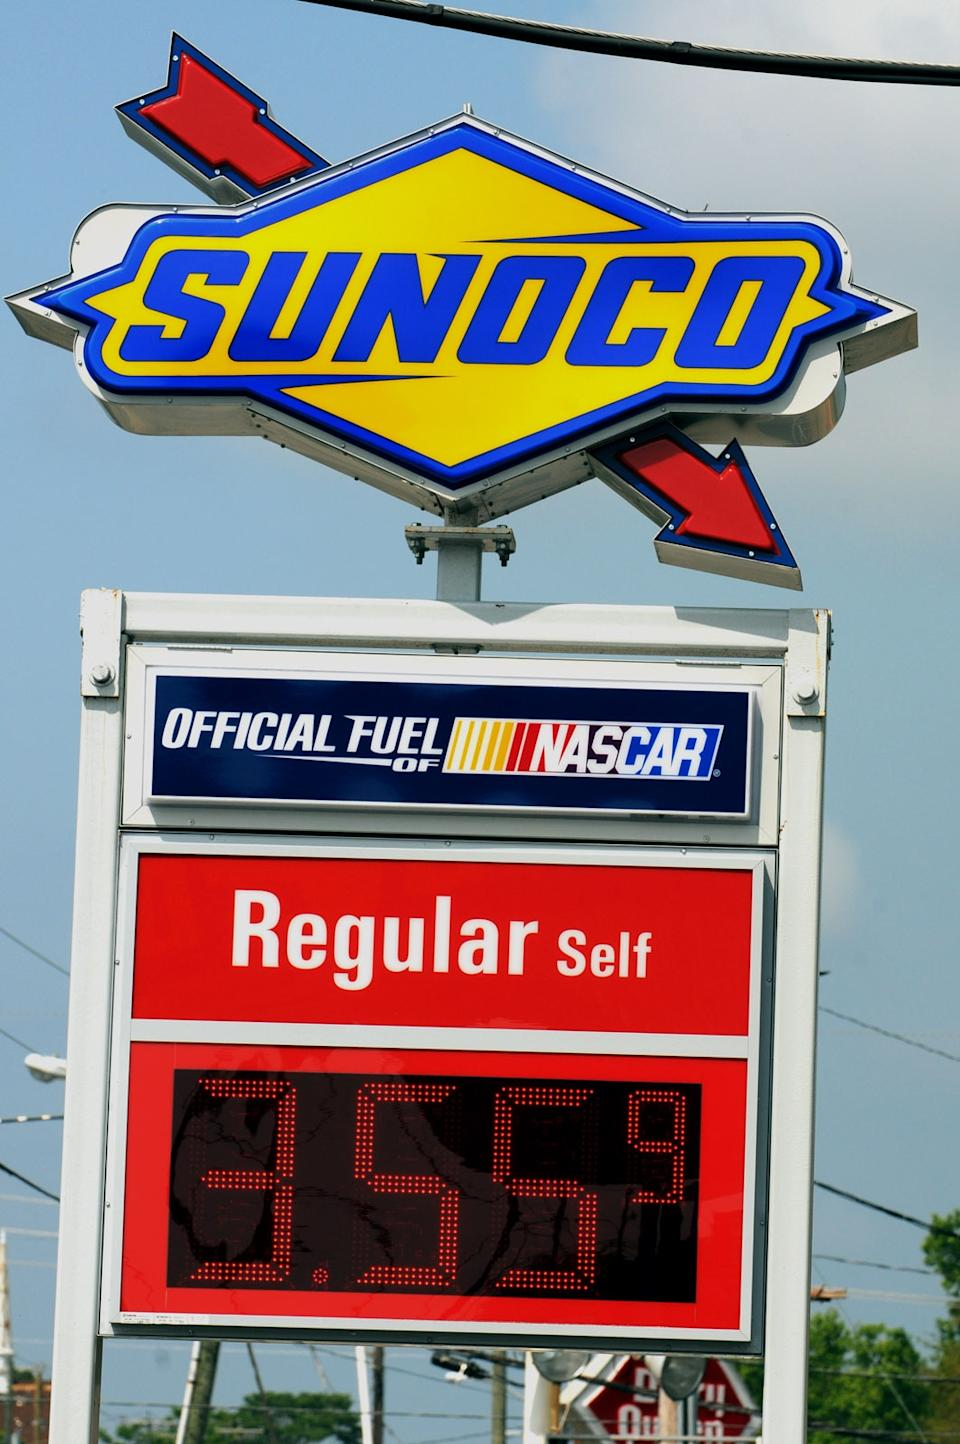 Gas prices appear on a Sunoco station sign located in Wilmington, N.C. on Monday, April 30, 2012. Energy Transfer Partners is buying Sunoco in a $5.3 billion deal that creates one of the more diverse pipeline companies in the country. (AP Photo/Wilmington Star-News, Mike Spencer)